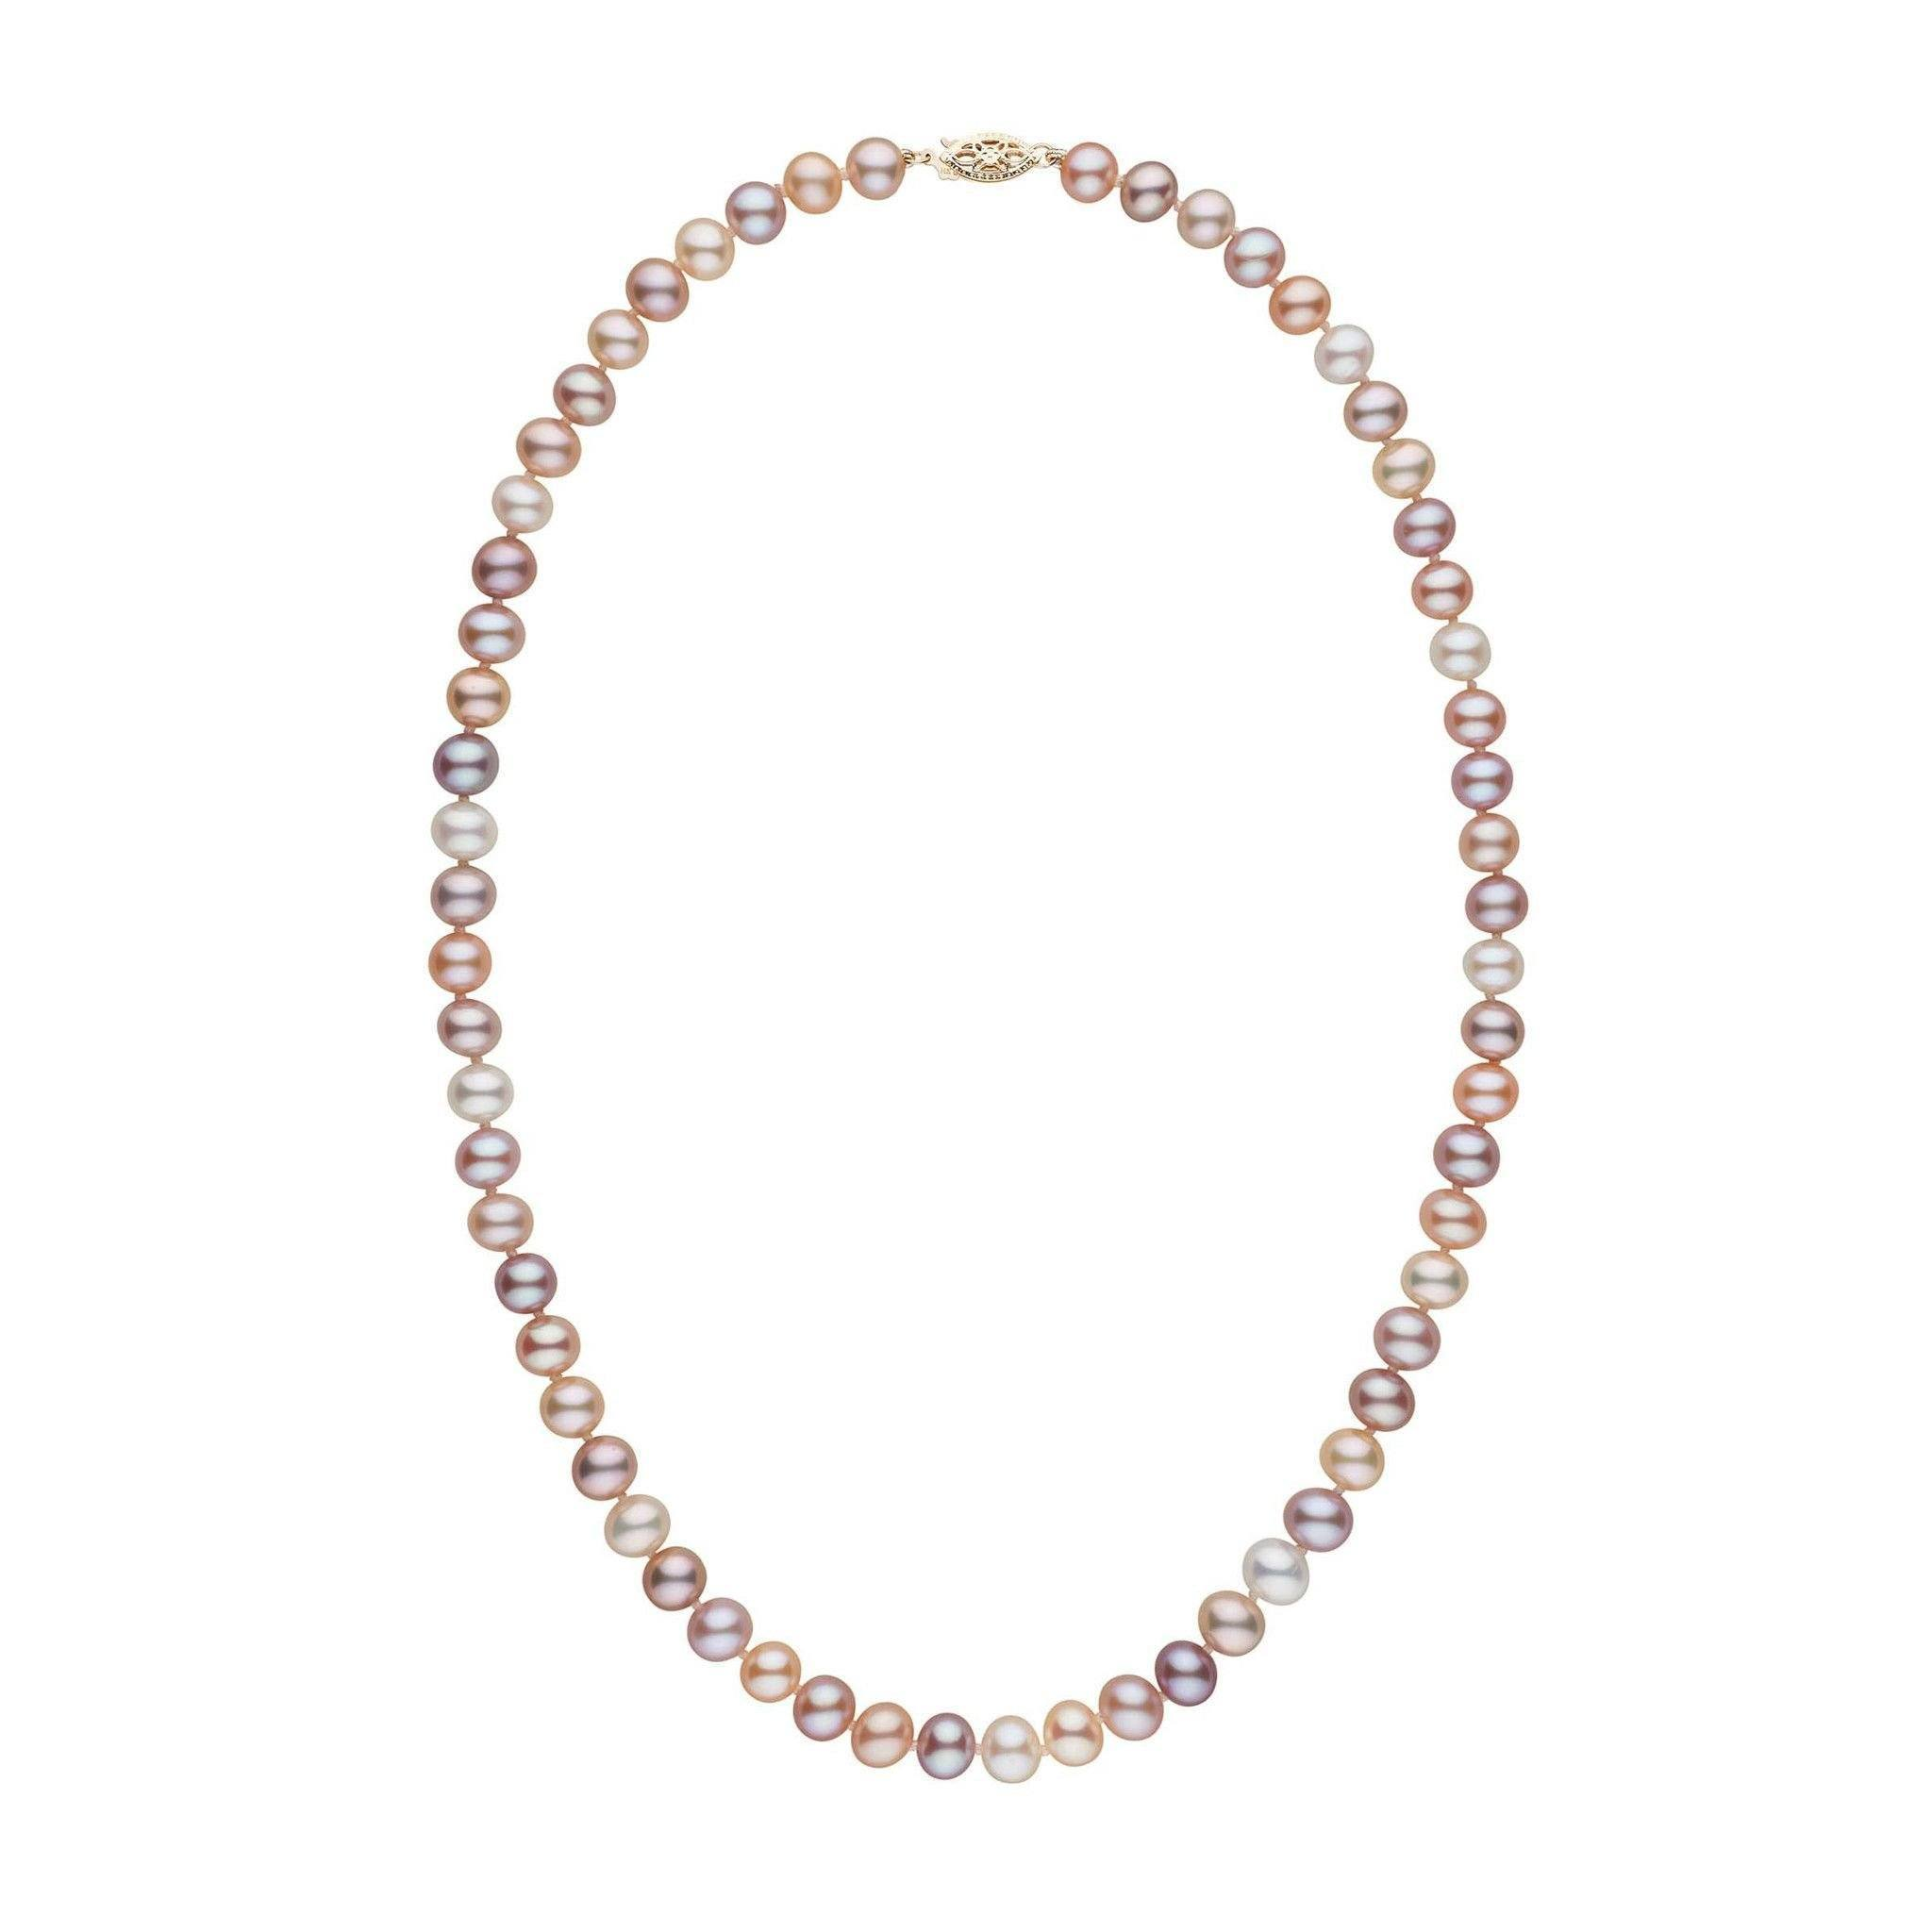 6.5-7.0 mm 18 Inch AAA Multicolor Freshwater Pearl Necklace